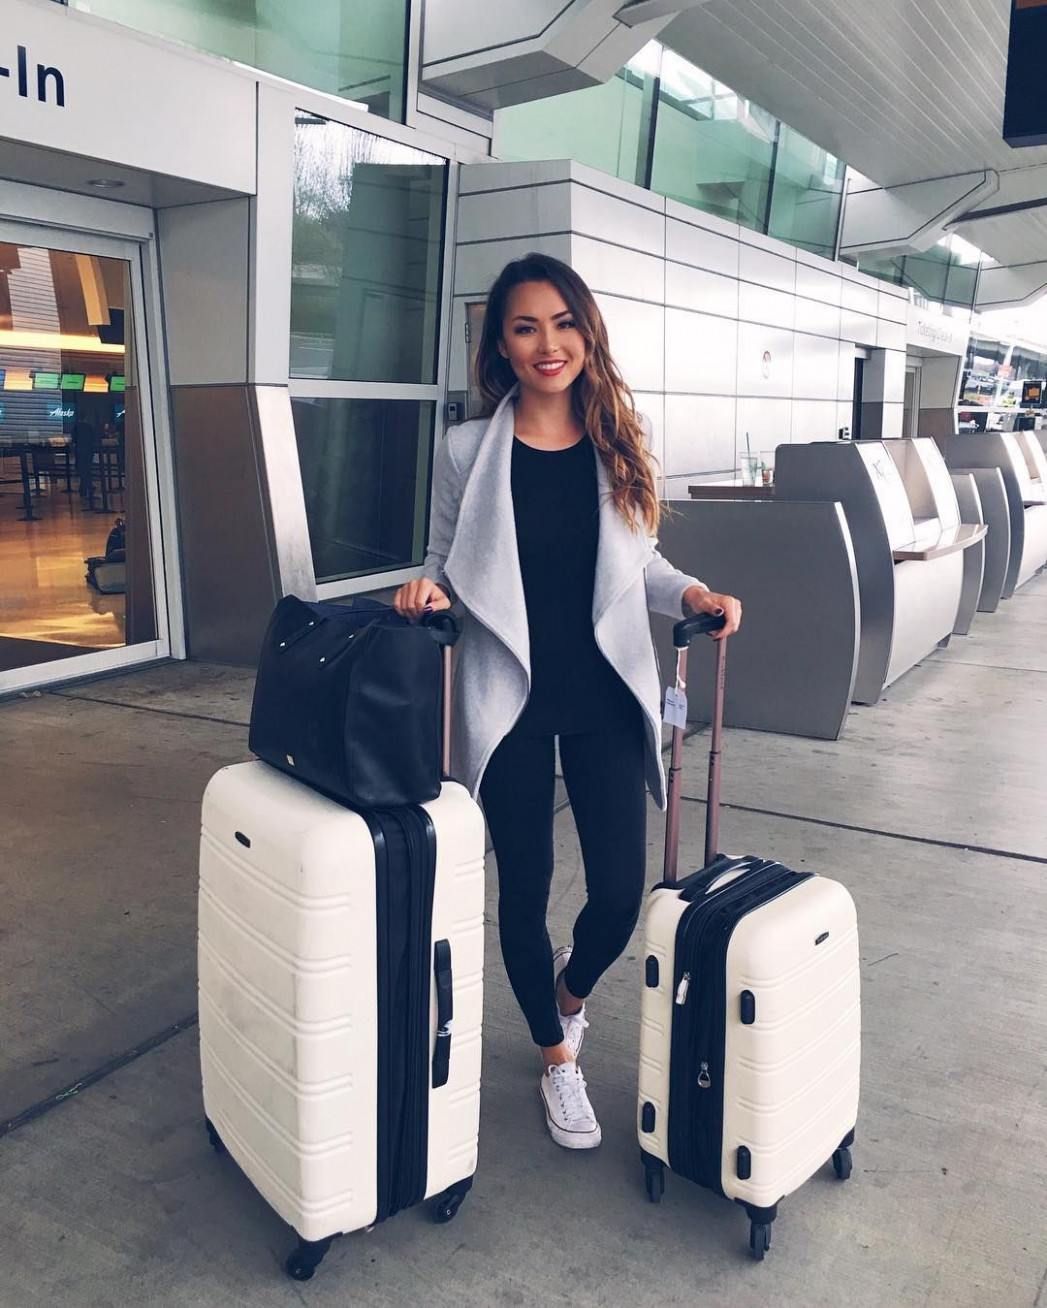 12 Outfits to Wear to the Airport - Crossroads  Cute travel  - Airport Outfits